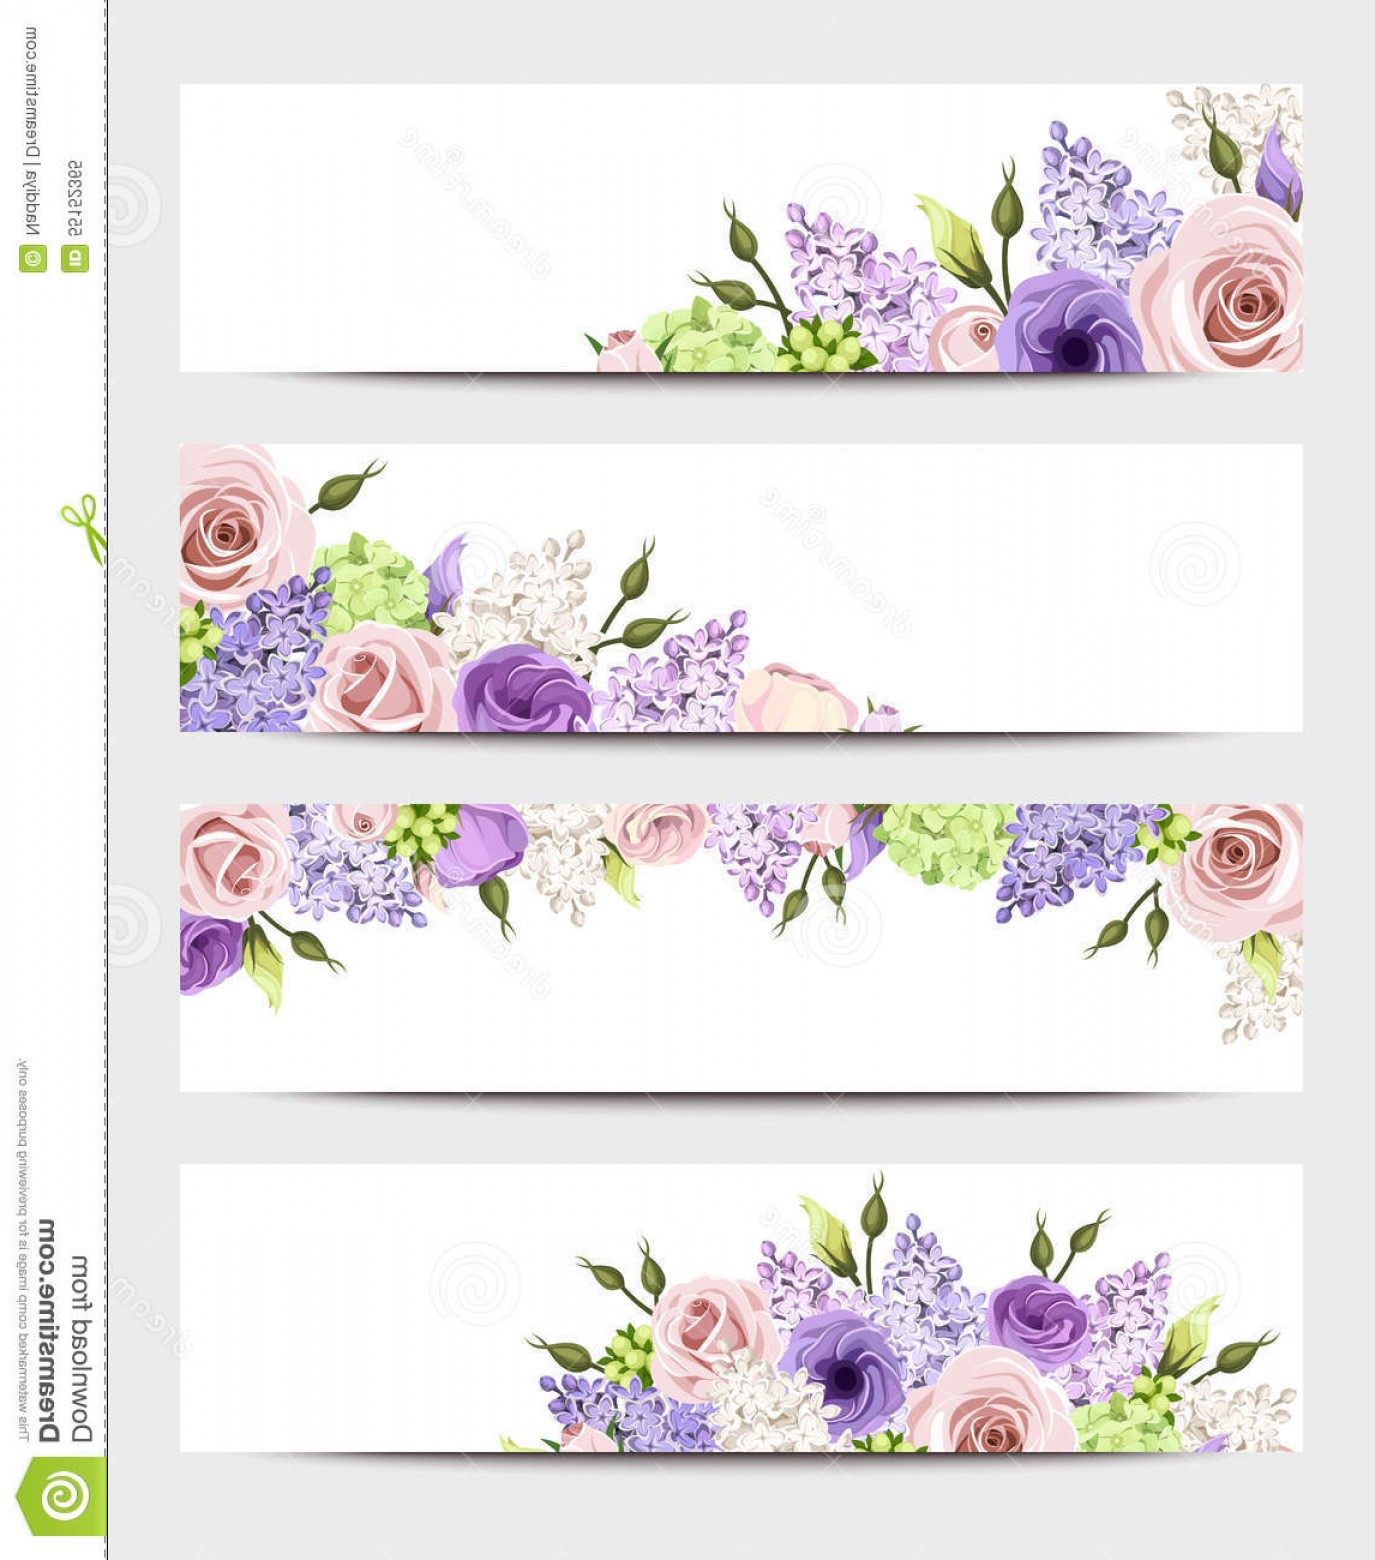 Purple Green And White Vector: Stock Illustration Web Banners Pink Purple White Roses Lilac Flowers Vector Eps Green Lisianthuses Hydrangea Image